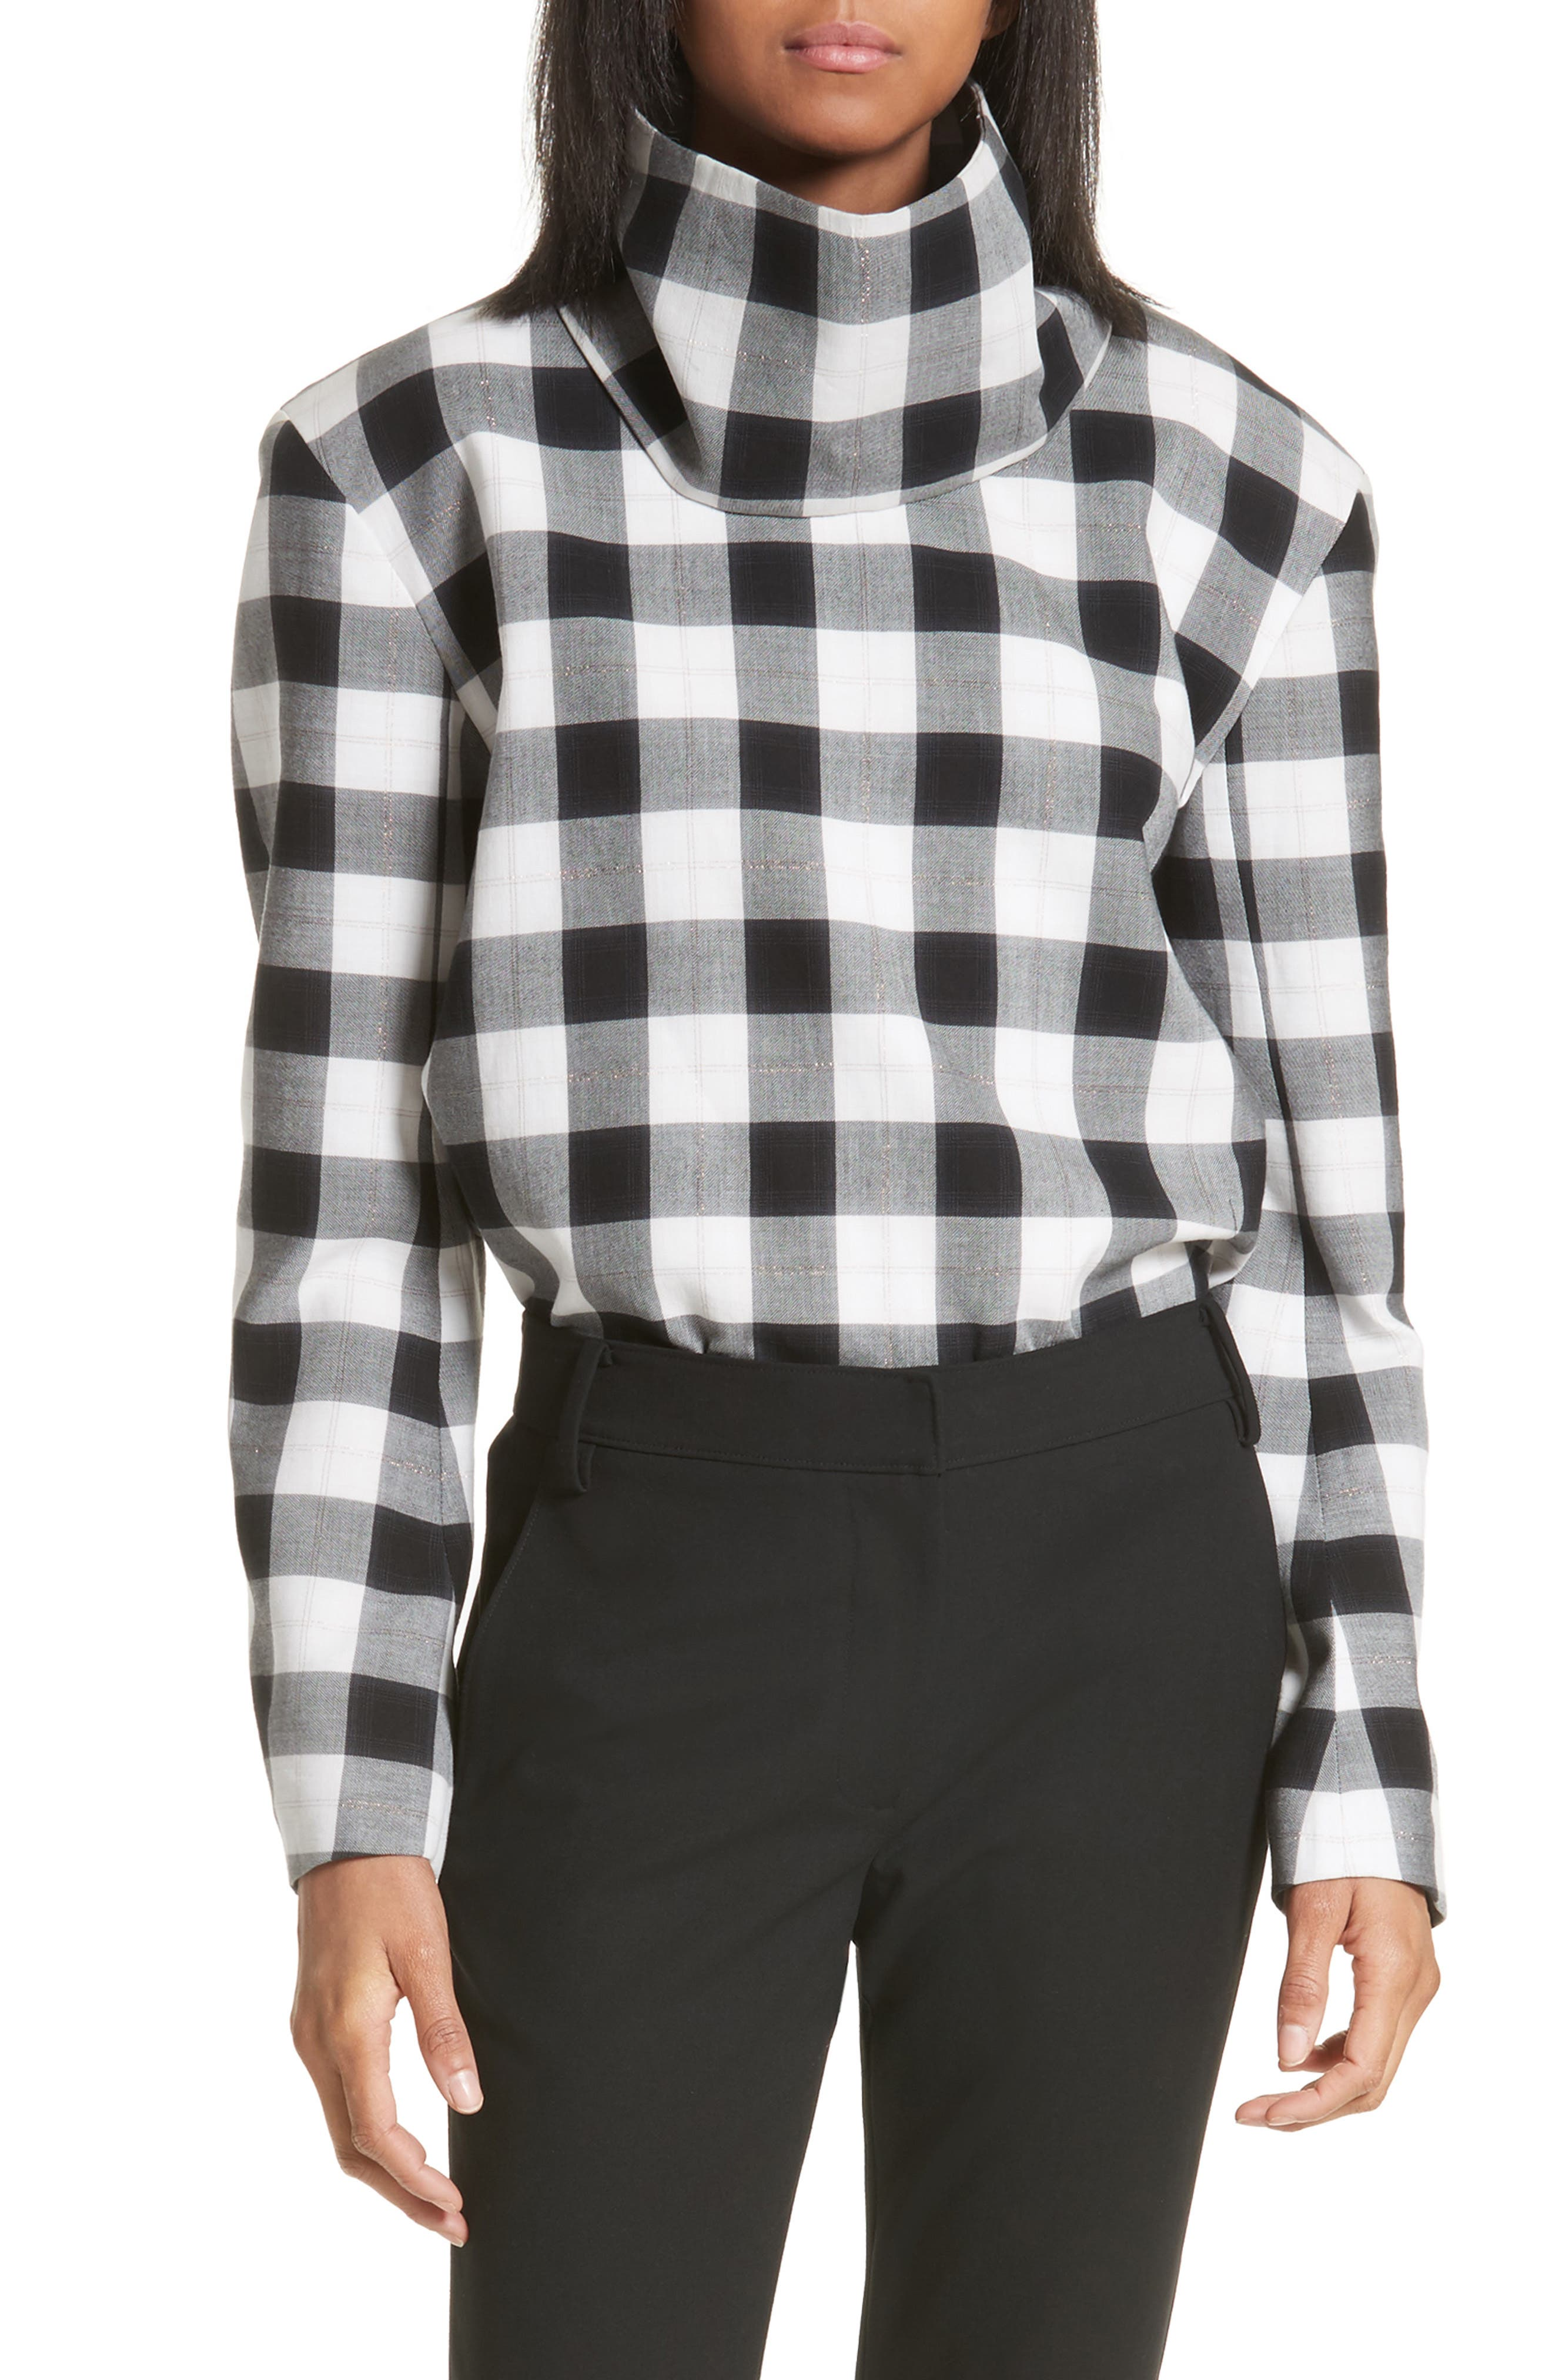 Alternate Image 1 Selected - Tibi Tess Plaid Top with Detachable Collar